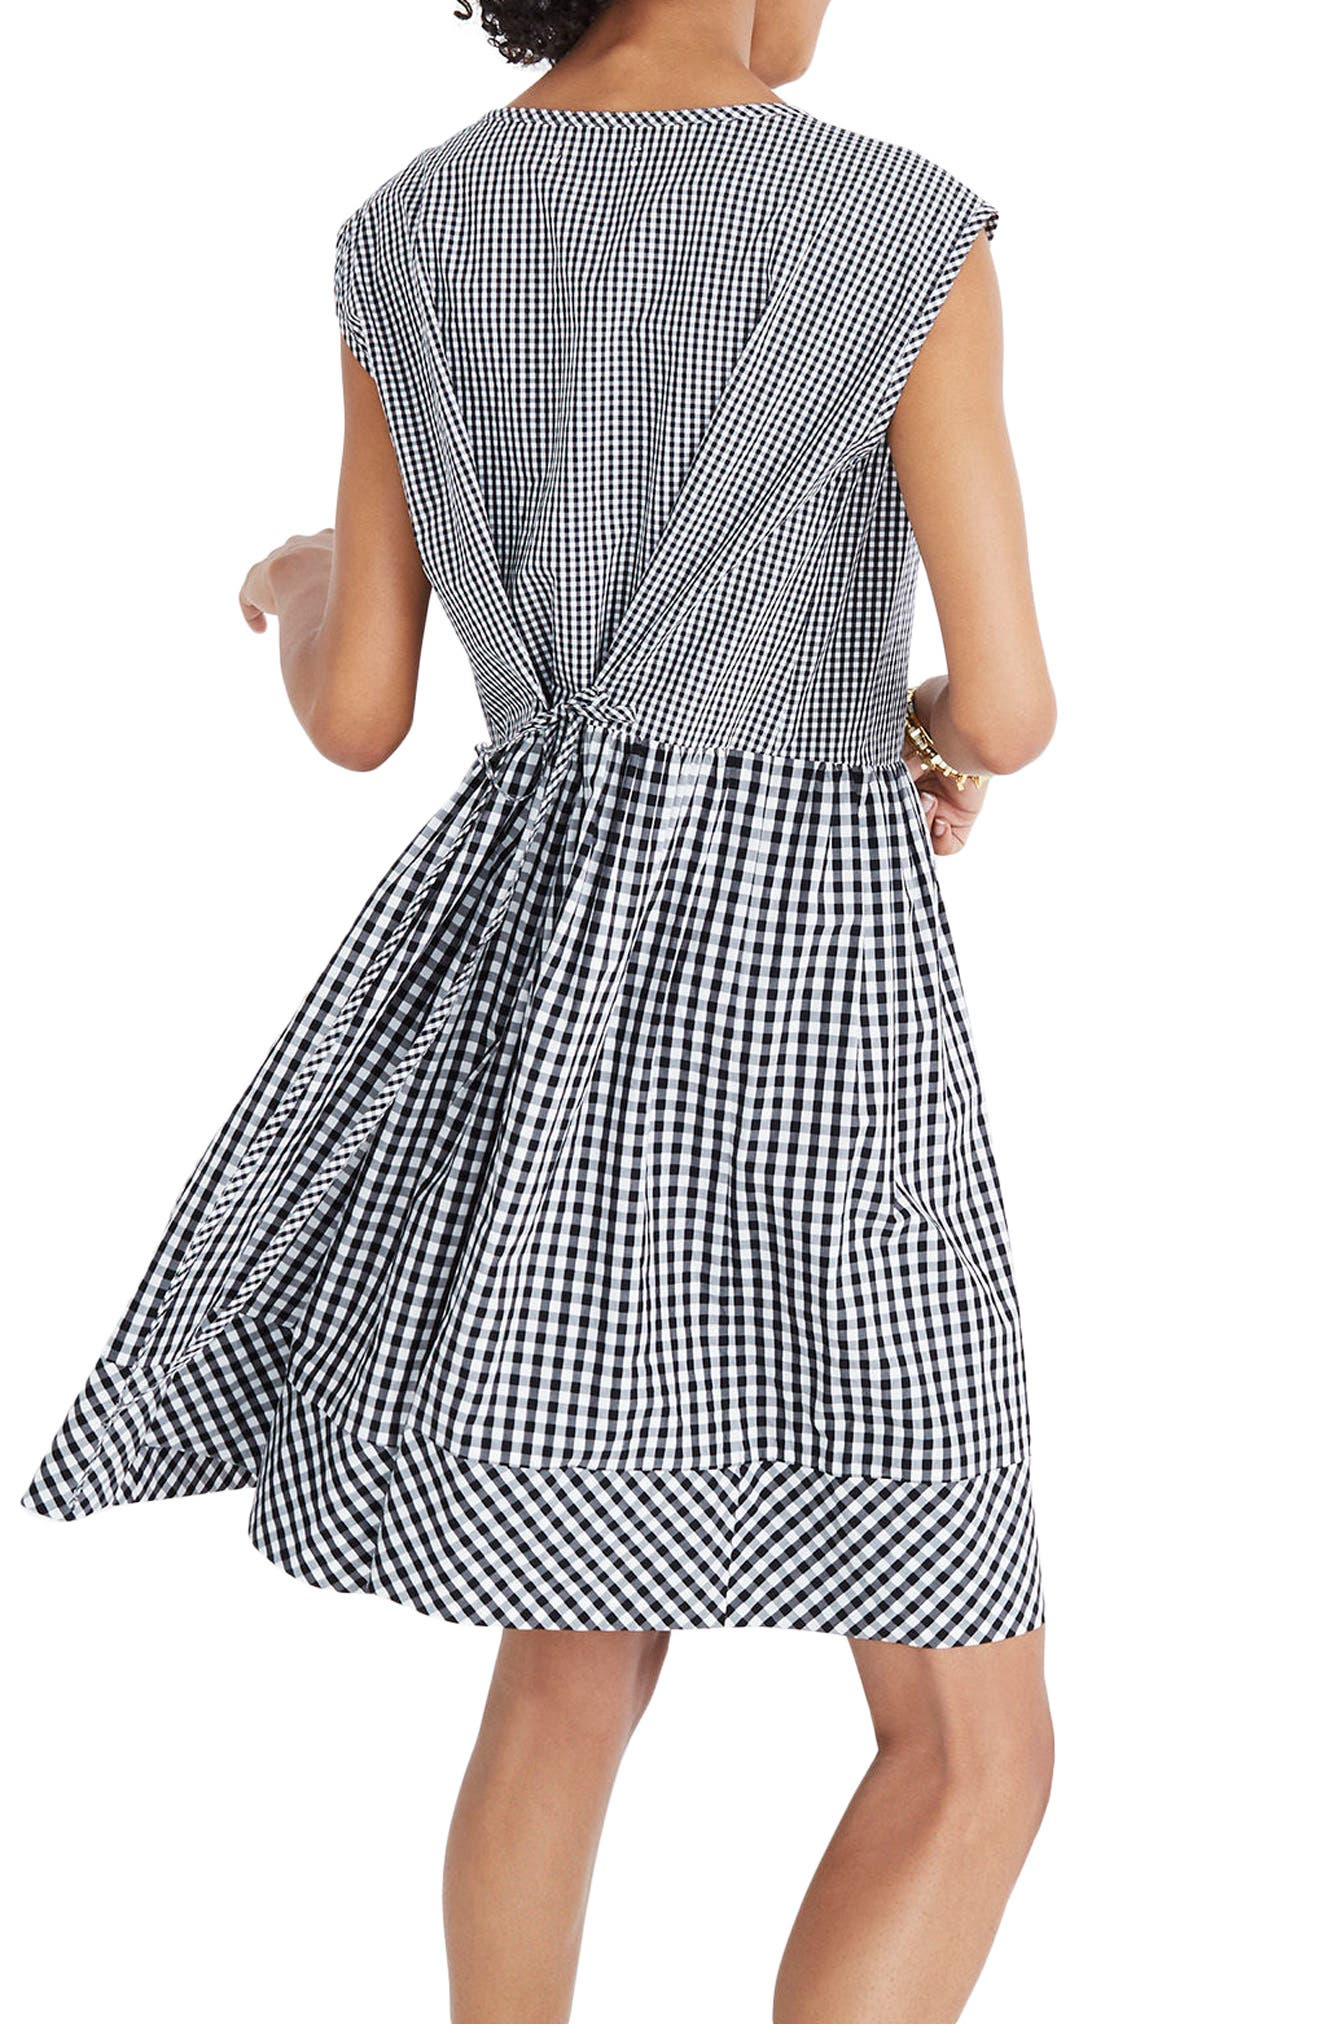 Gingham Tie Back Minidress,                             Alternate thumbnail 2, color,                             009